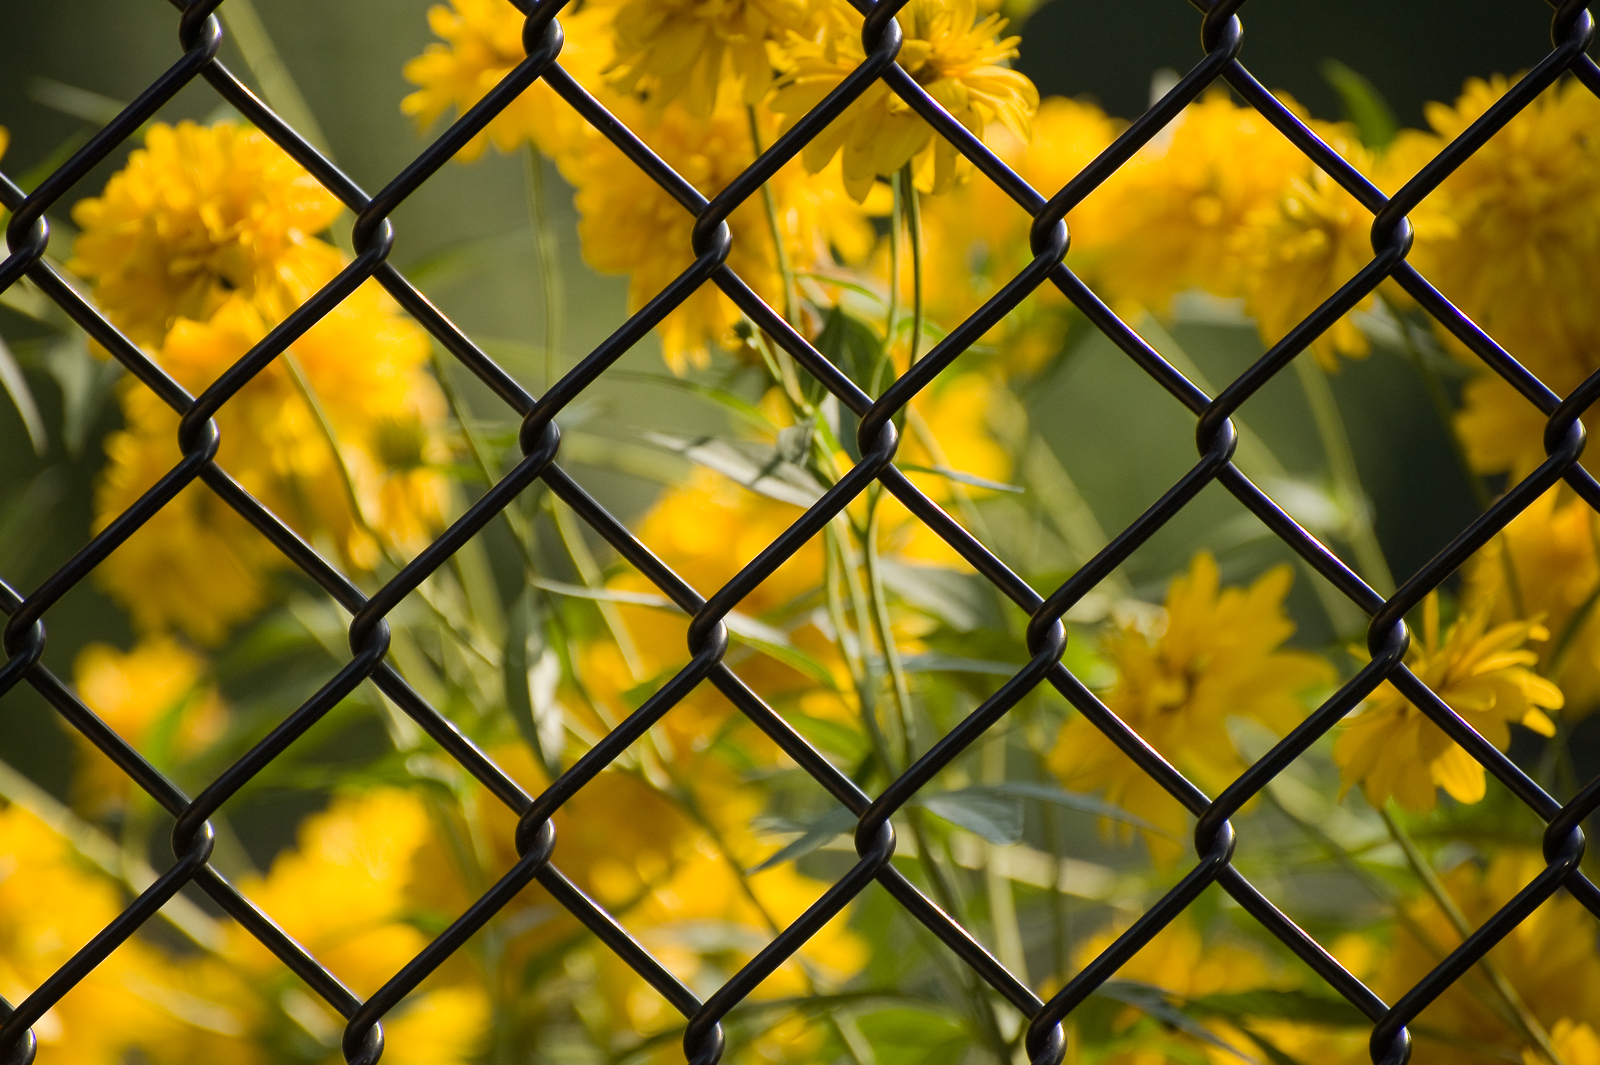 Caged Beauty #1